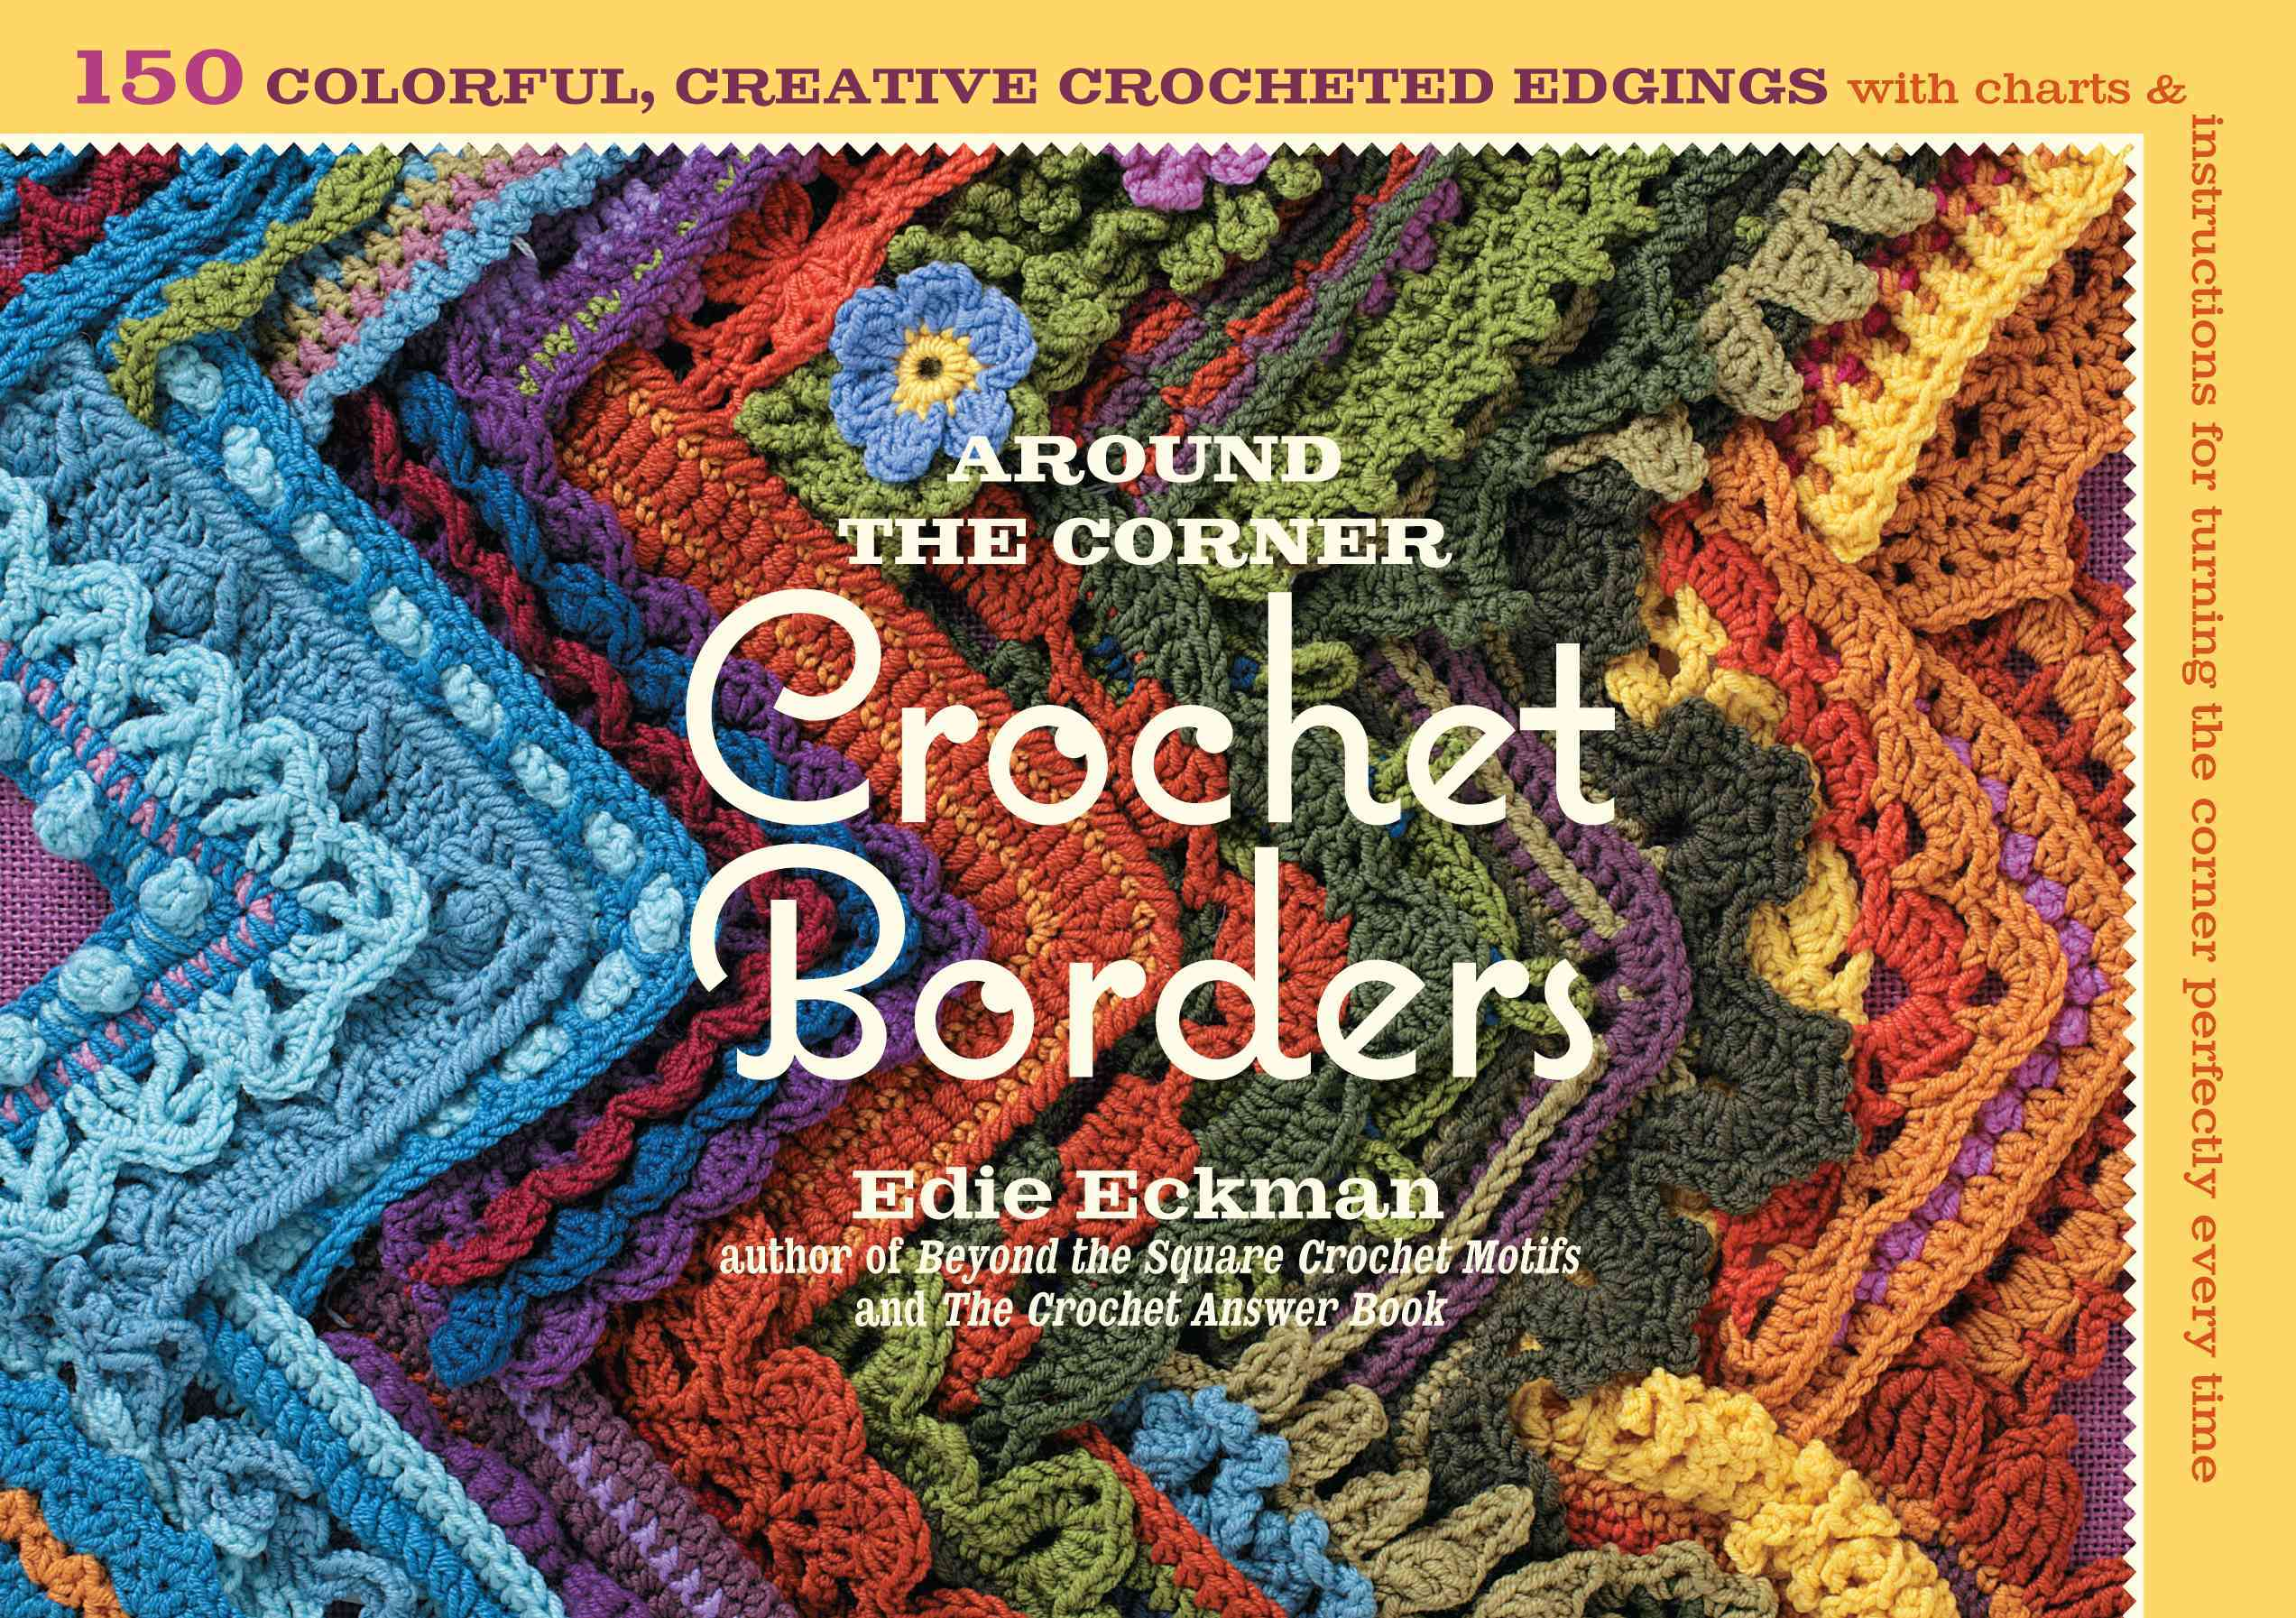 Around the Corner Crochet Borders: 150 Colorful, Creative Crocheted Edgings with Charts & Instructions for Turnin... (Paperback)